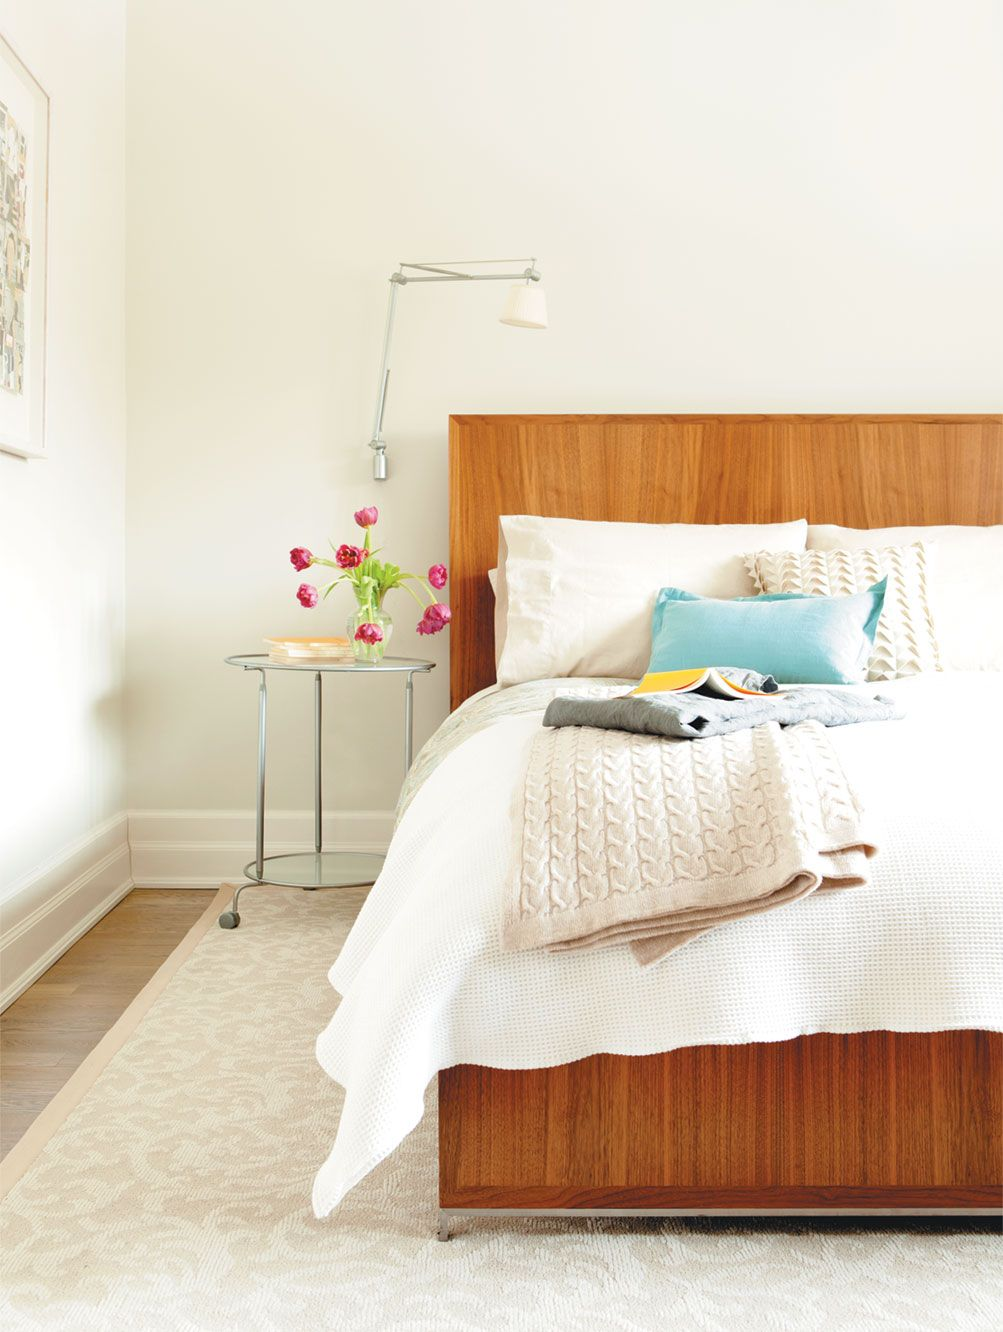 Decorating bedroom simple  summer decorating ideas  throw pillows bedrooms and pillows